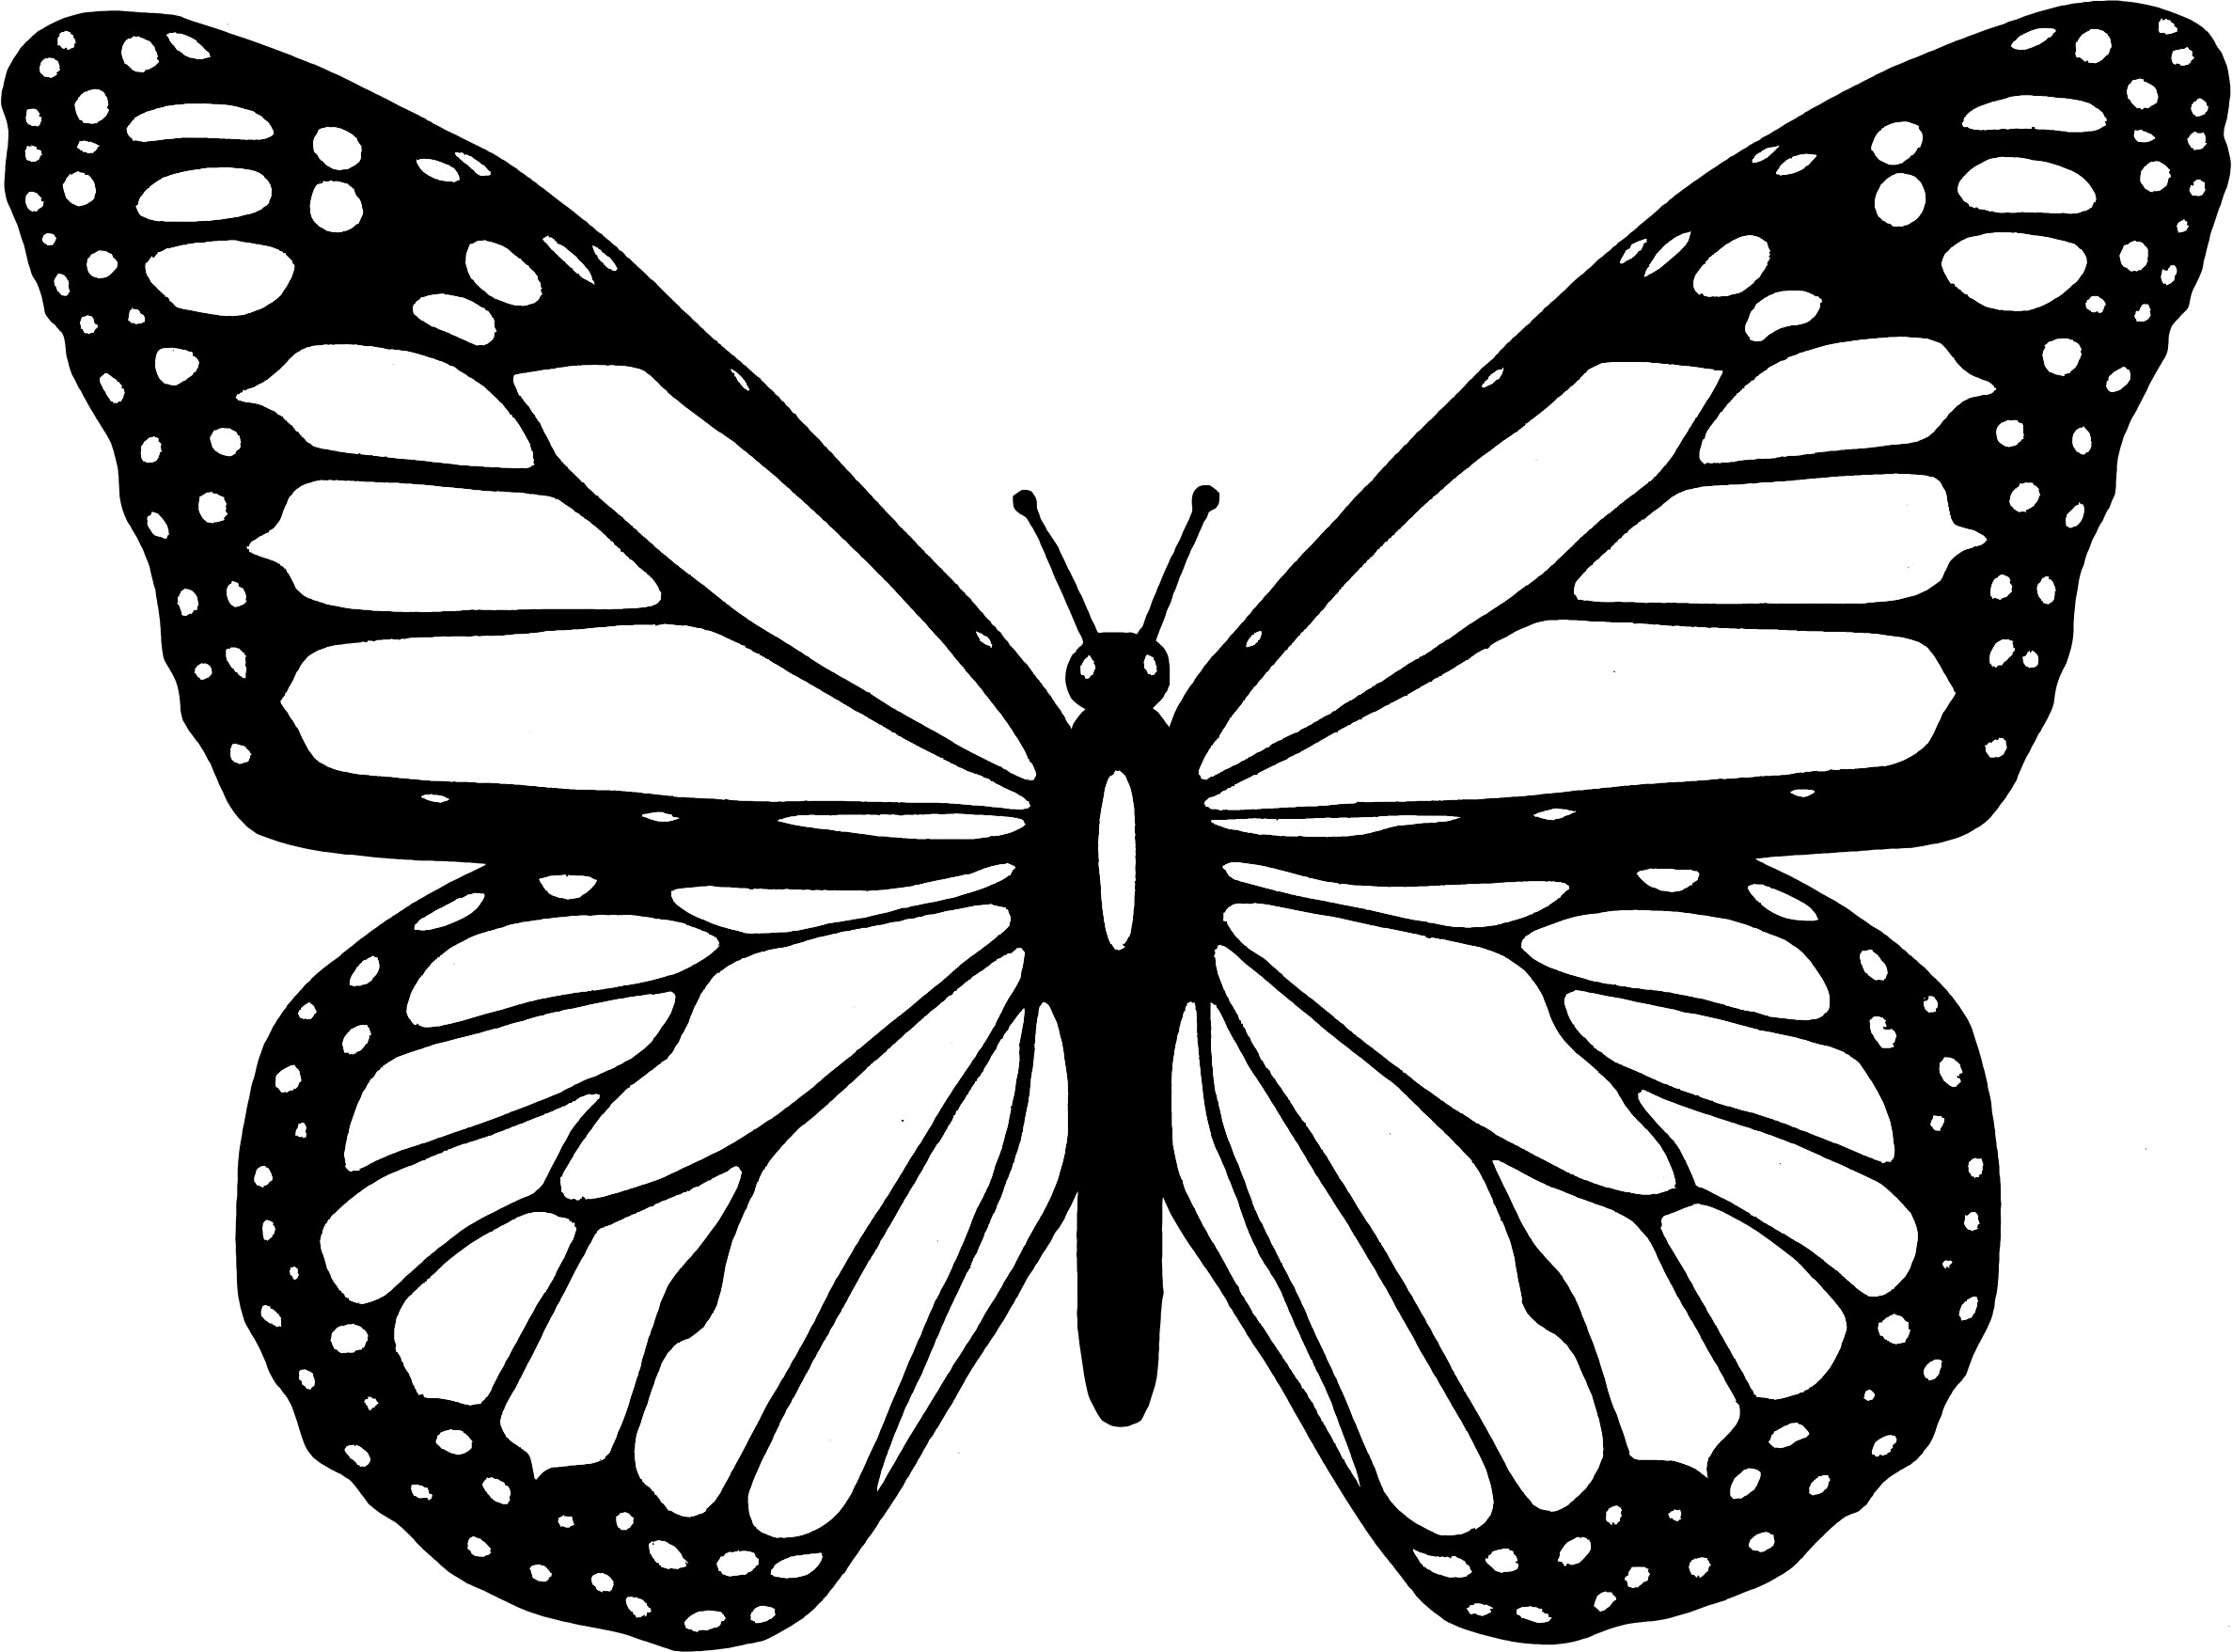 Monarch butterfly Coloring Pages Free  Gallery 13n - Save it to your computer